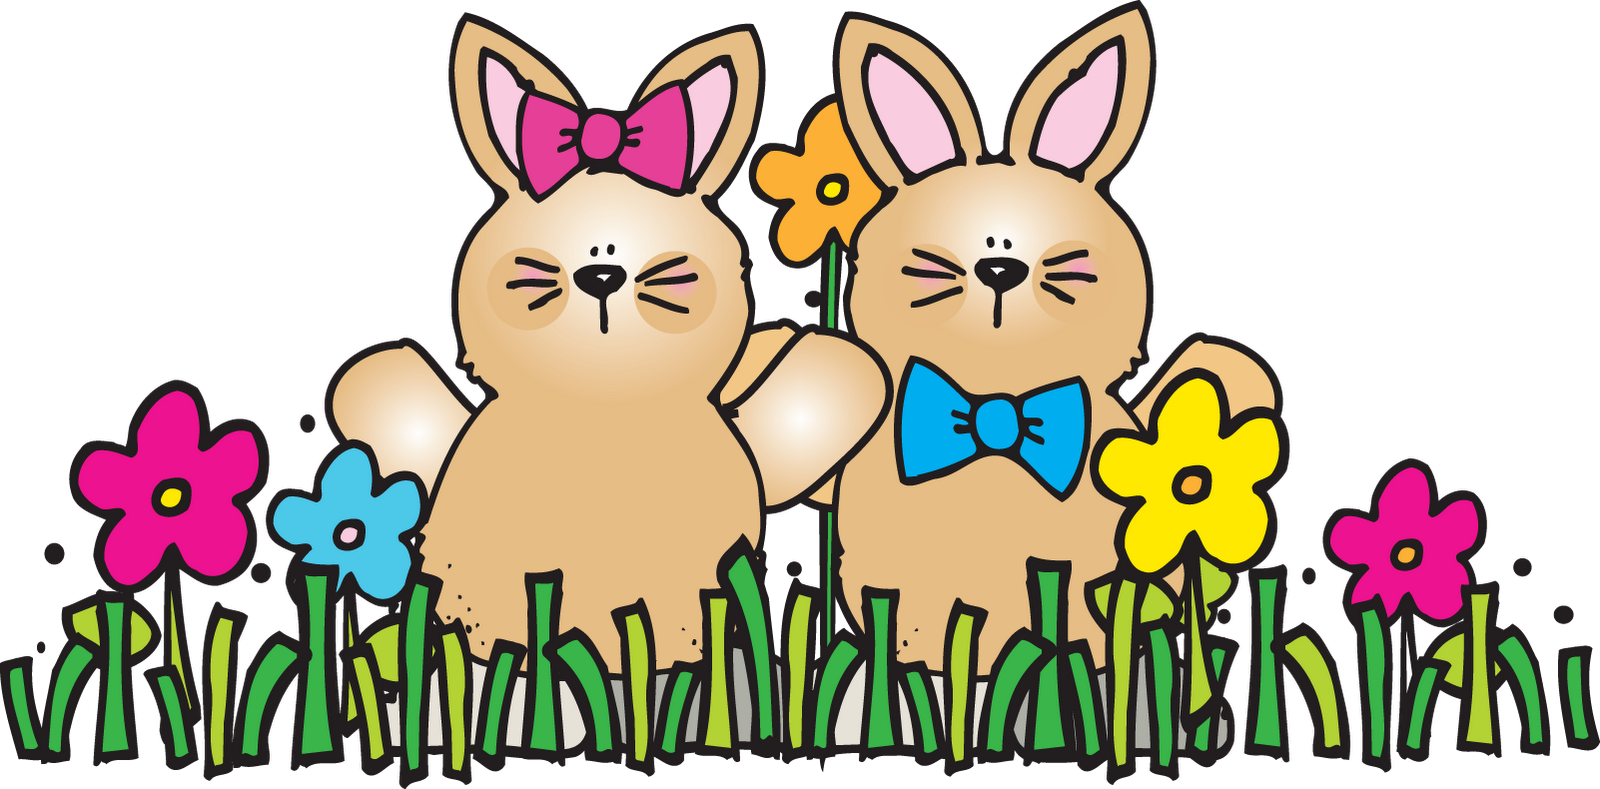 Kinderkids fun easter is. Cute clipart march